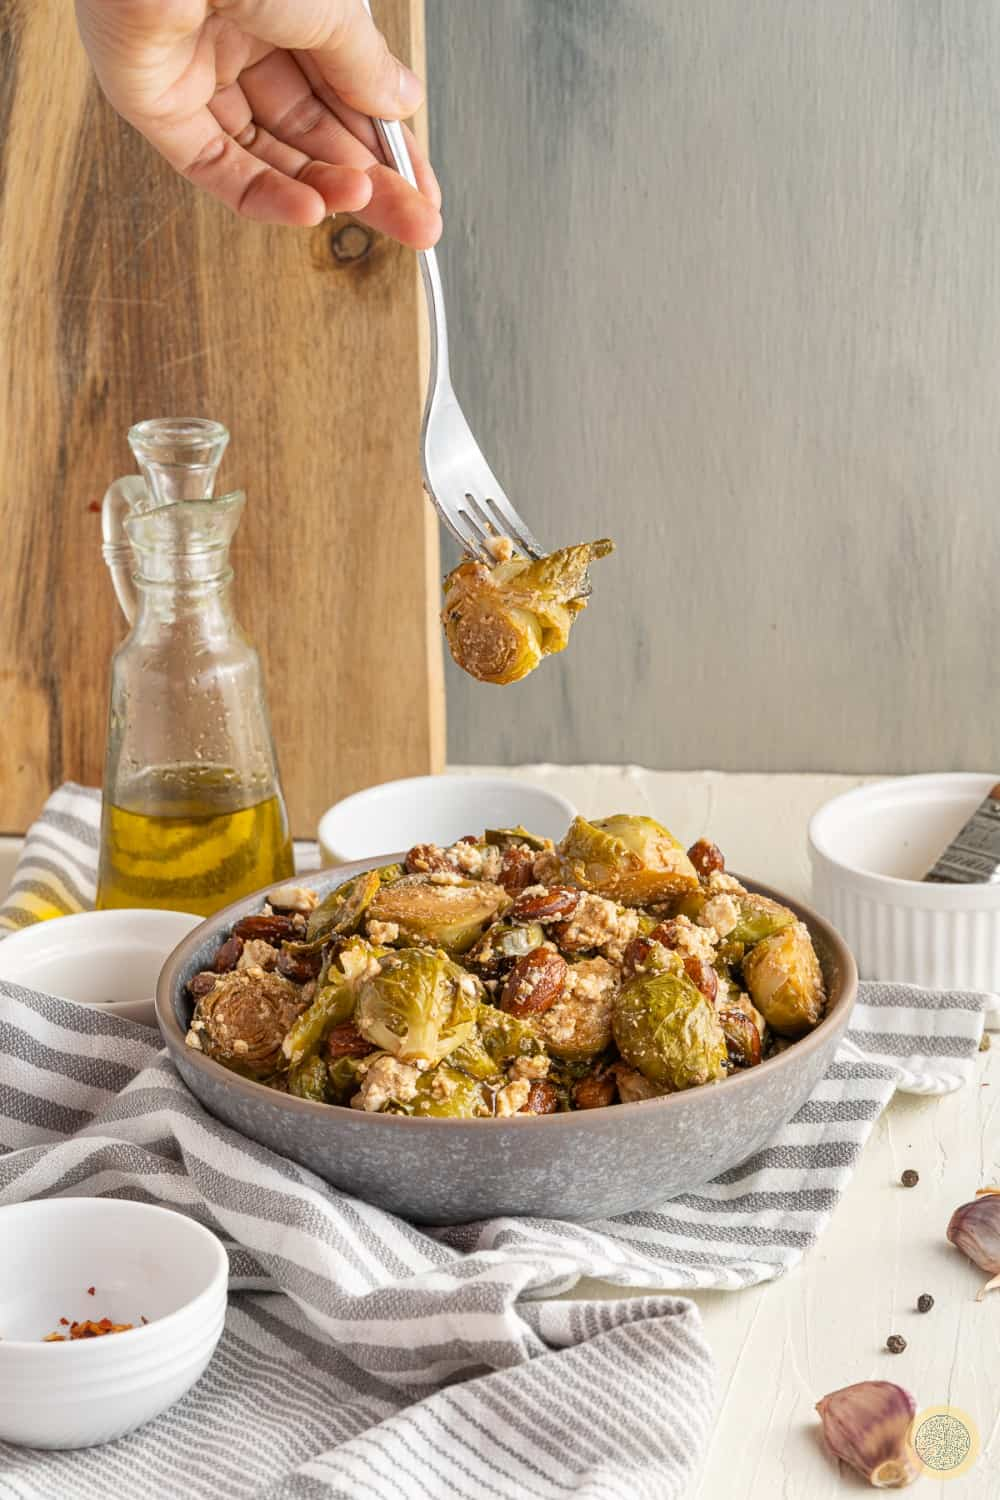 Should You Cut Brussel Sprouts in Half Before Cooking?